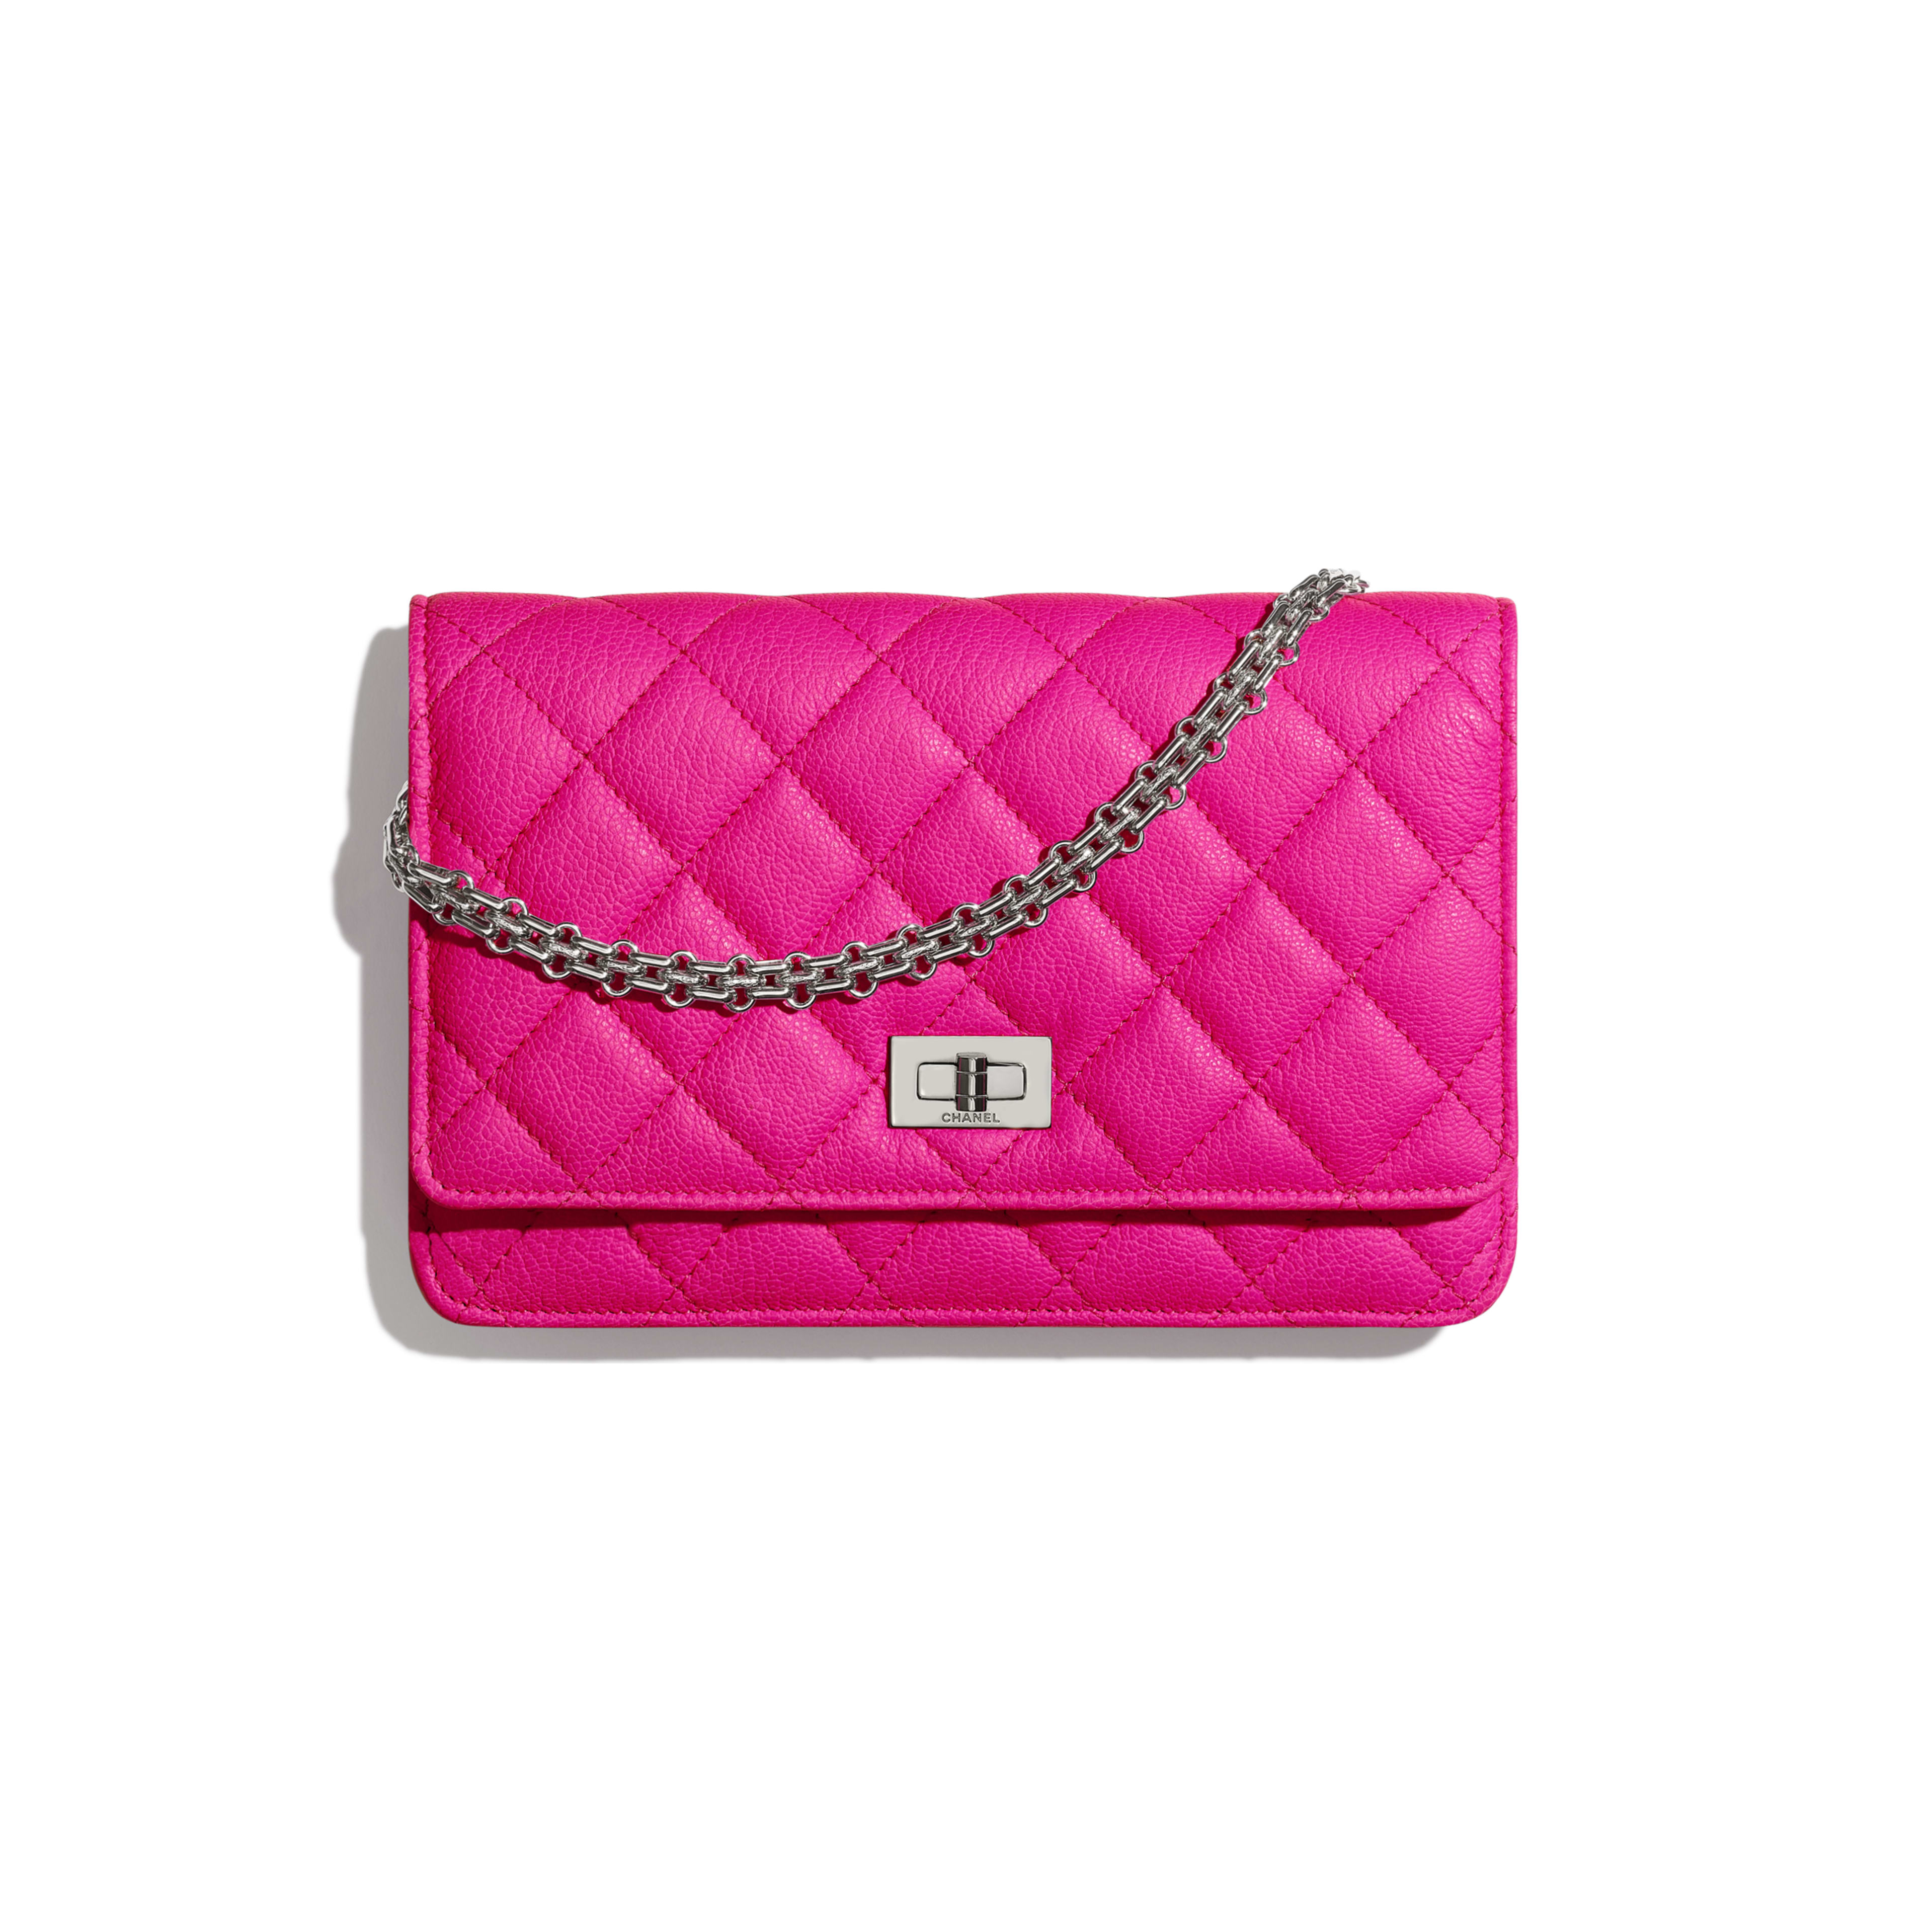 2.55 Wallet on Chain - Pink - Goatskin & Silver-Tone Metal - Default view - see full sized version